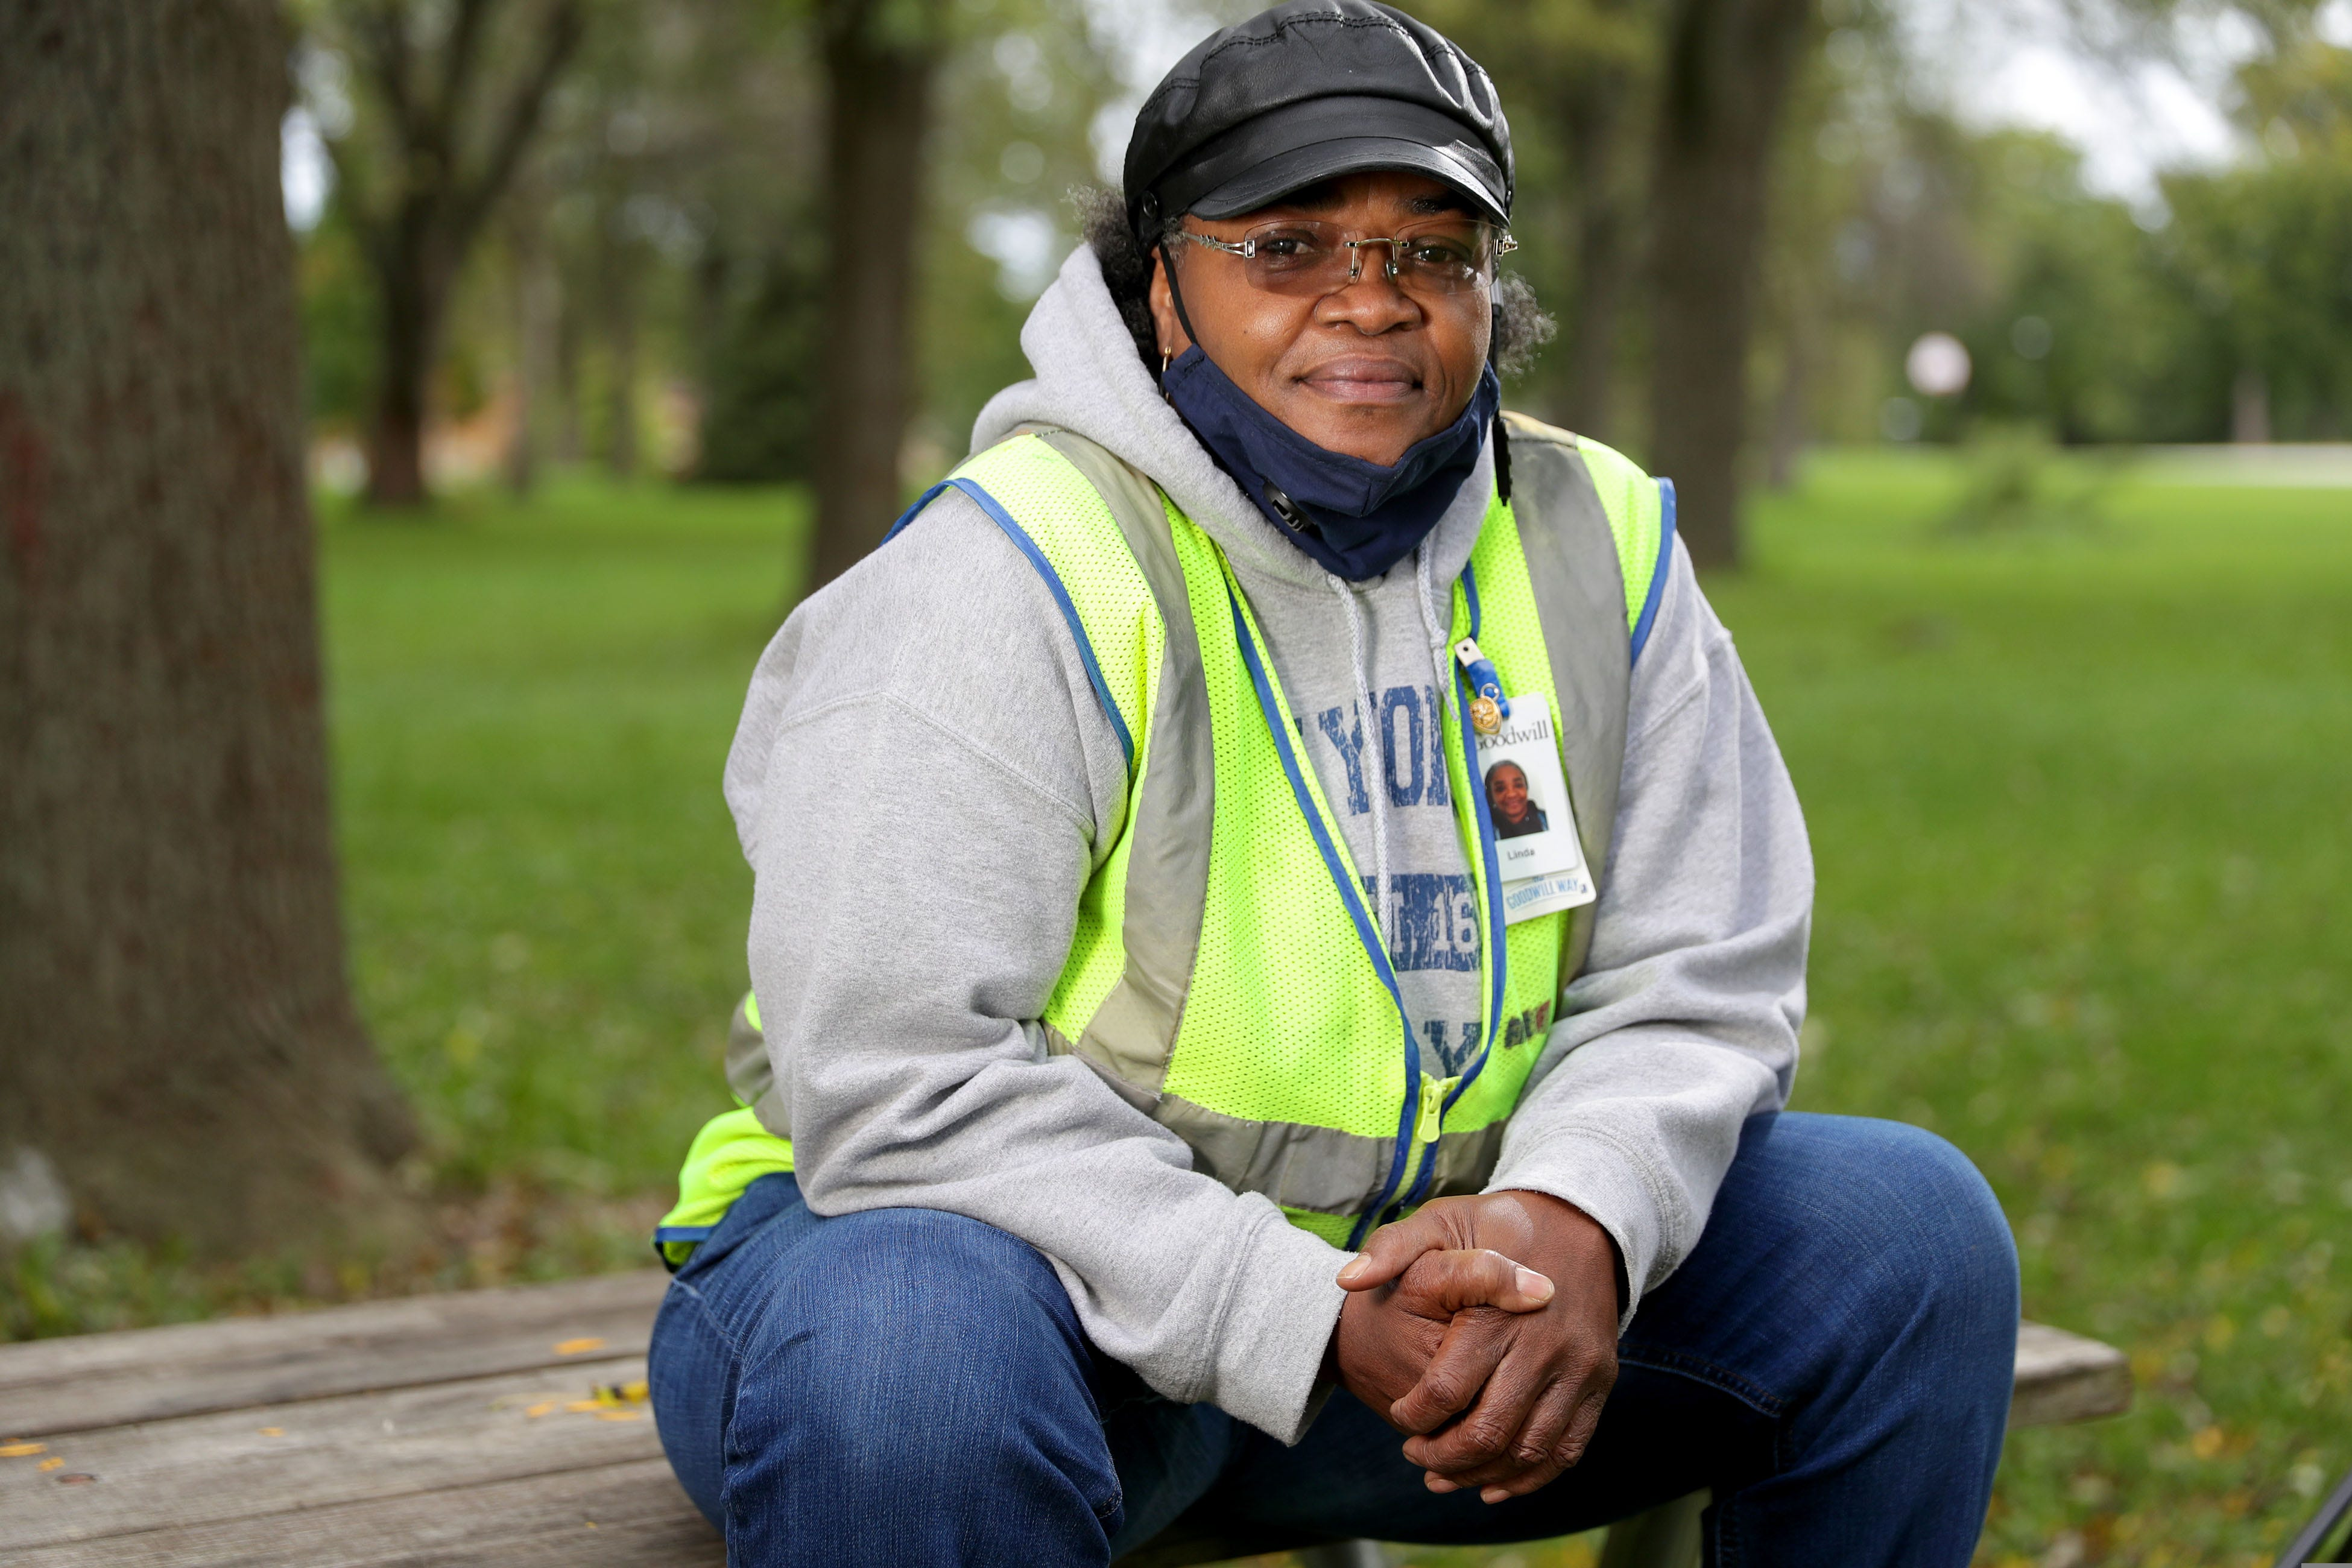 Linda Carter-Brooks works two jobs. She is personal care worker and she delivers Meals on Wheels for Goodwill. Carter-Brooks is one of many women pushing through the pandemic but also taking on the brunt of it with low wages and jobs that put them at risk.